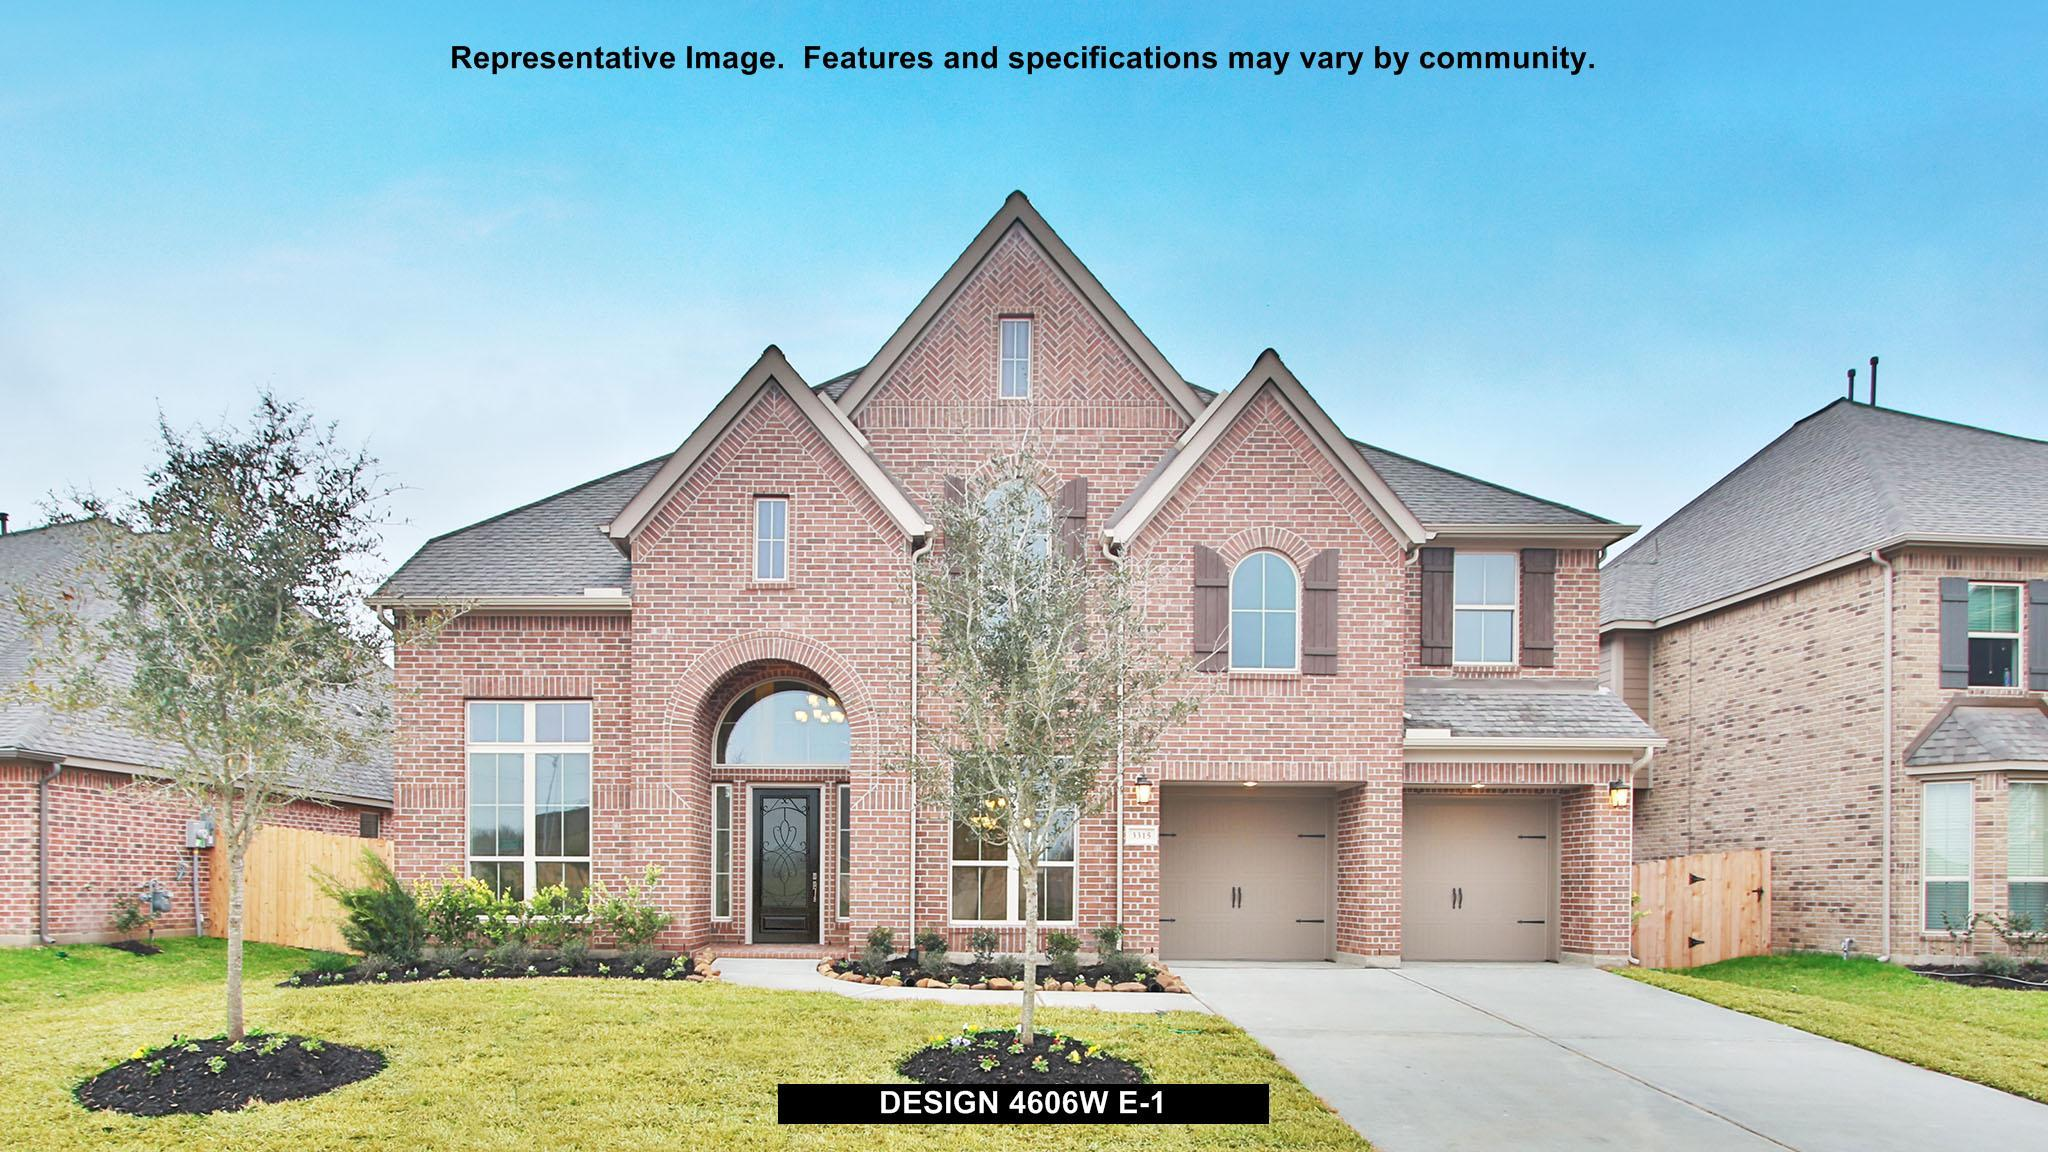 3430 GOLDEN CYPRESS LANE, Pearland, TX Homes & Land - Real Estate